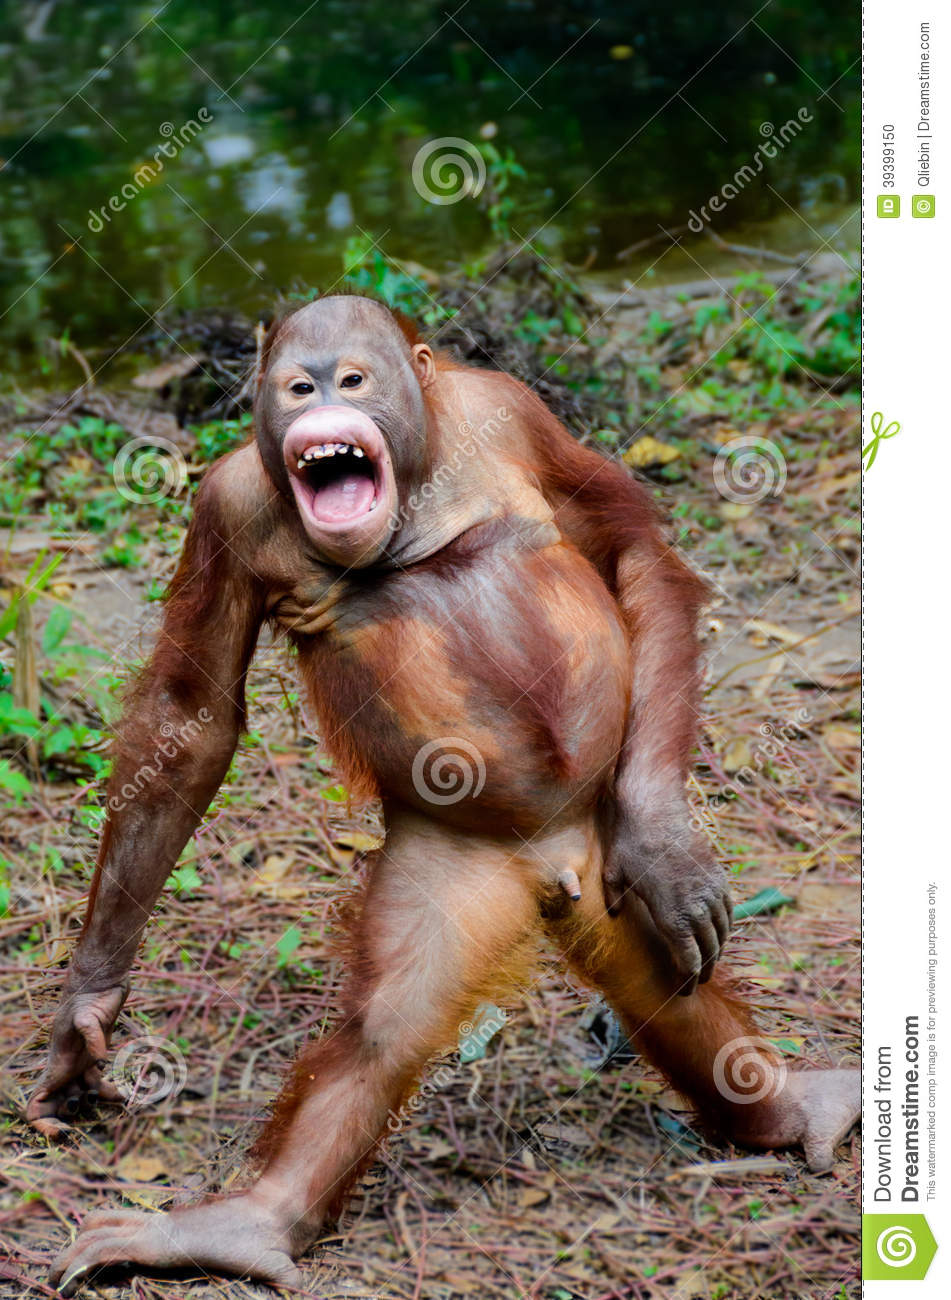 Monkey Laughing Clipart